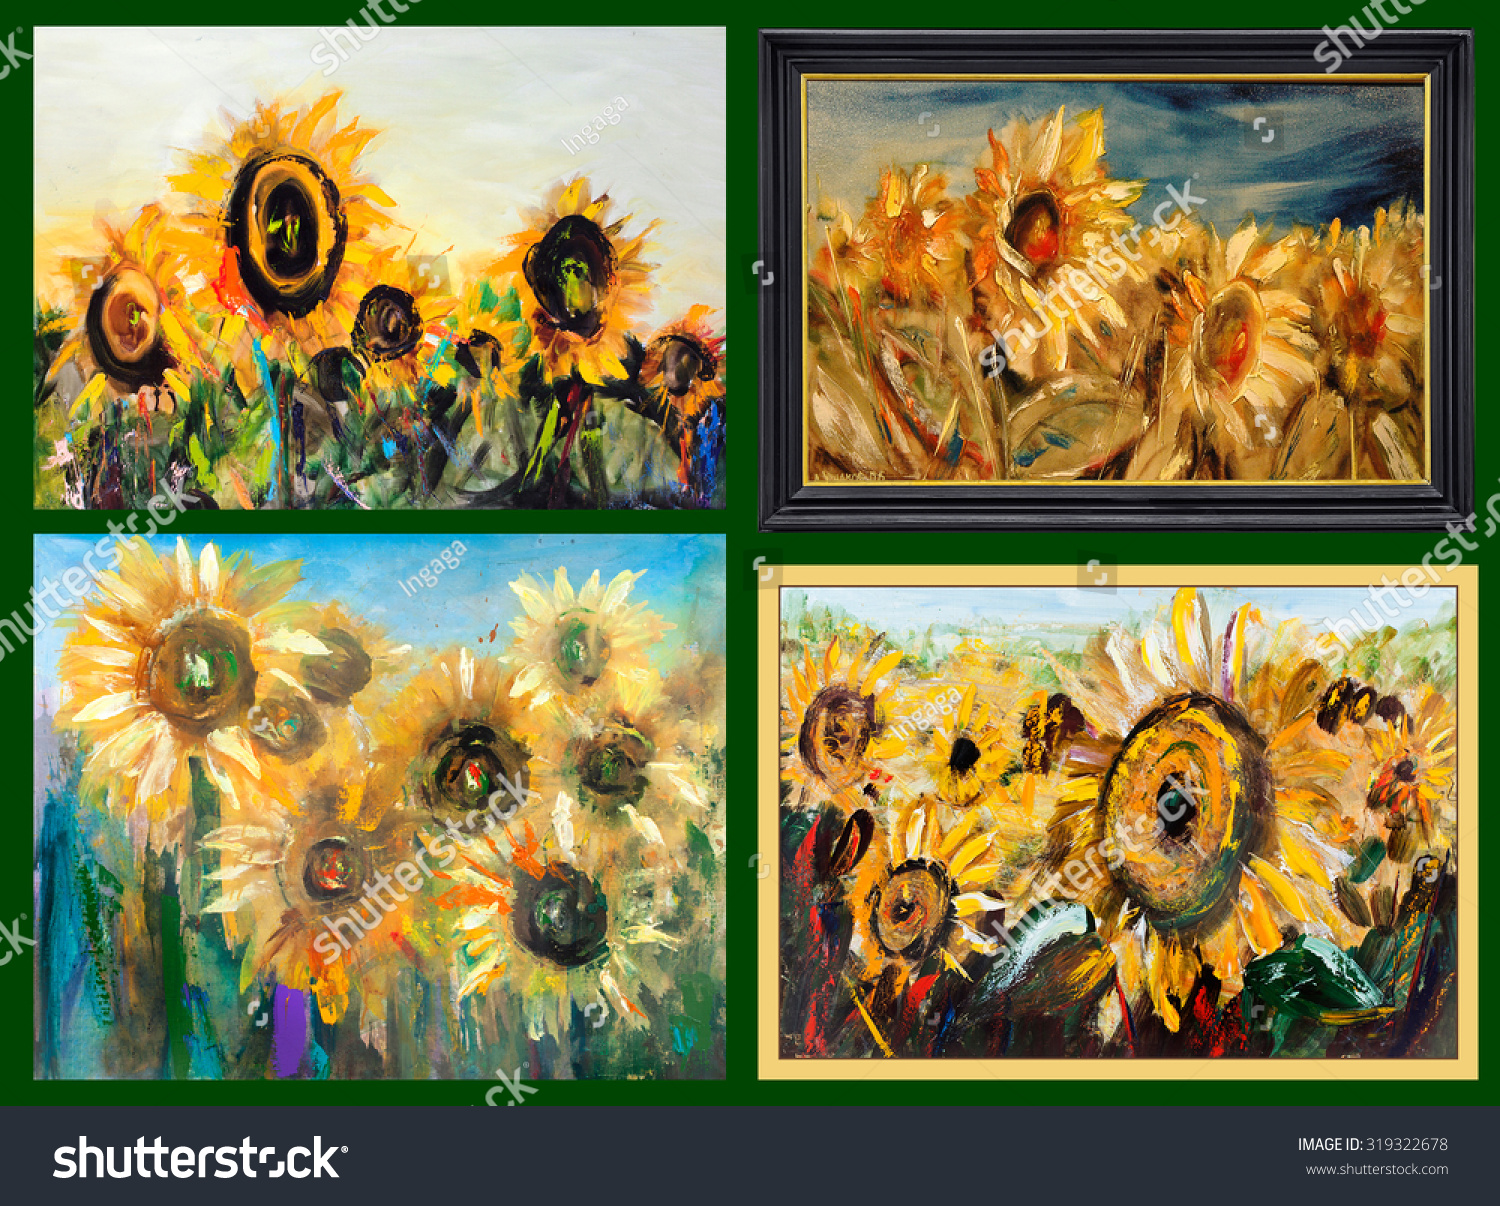 Sunflower Different Perspectives Big Yellow Flowers Painting Pictorial Art